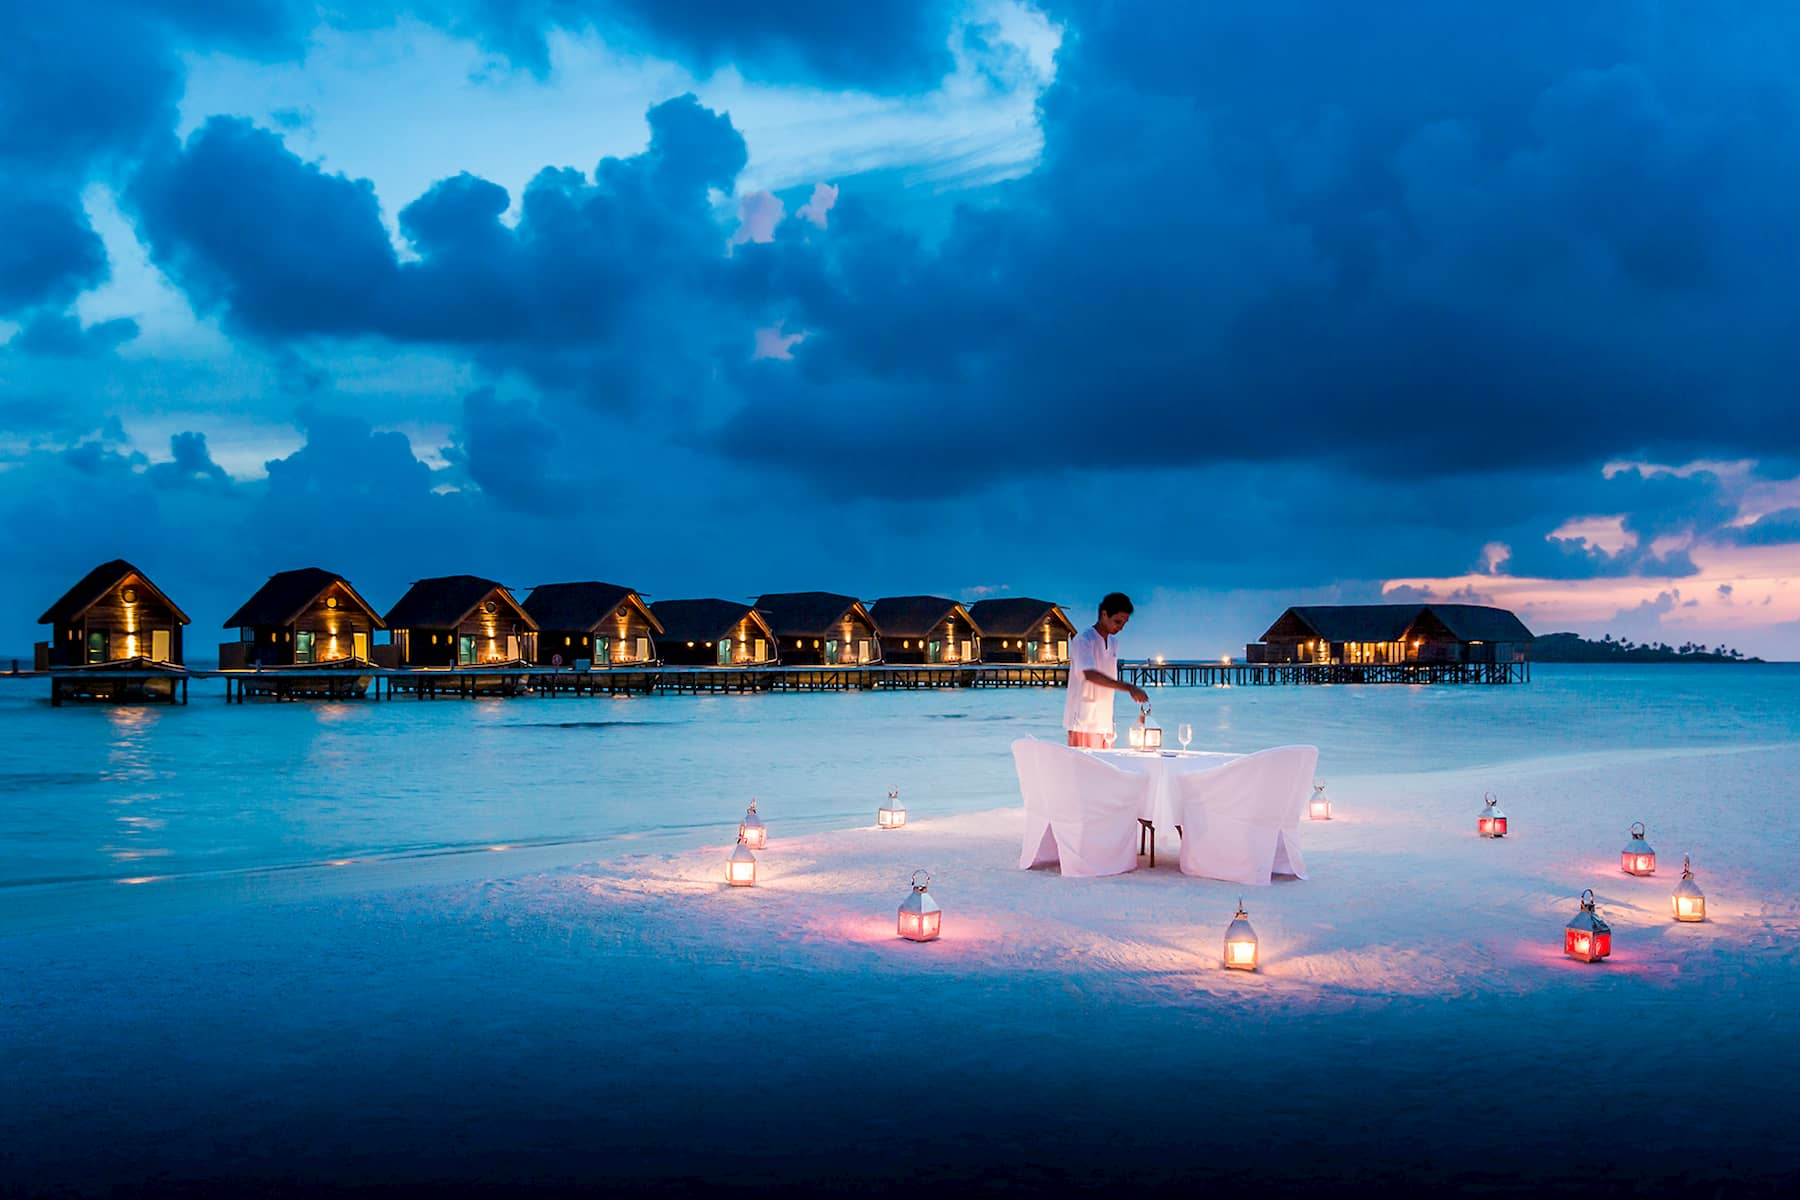 Resort Maldive Cocoa Island beach cena privata